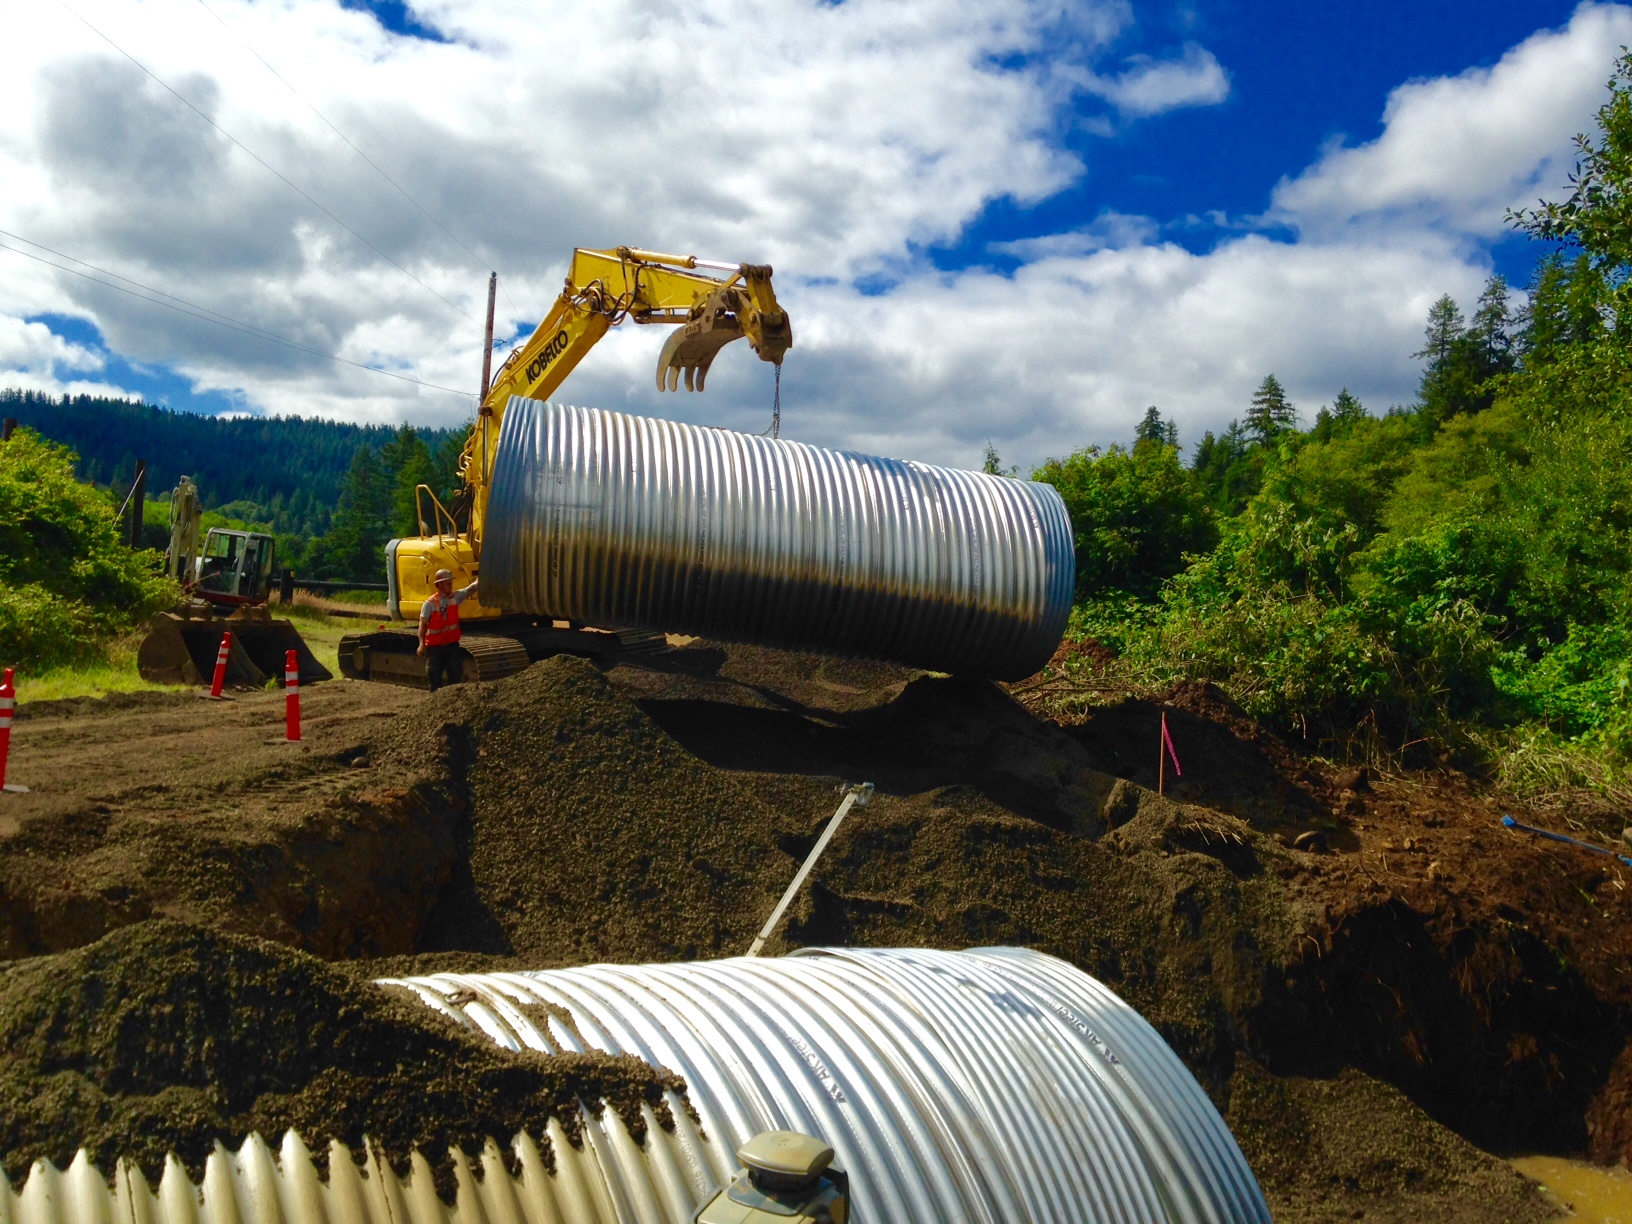 Moon 1208 Construction-Moving downstream section of culvert into place